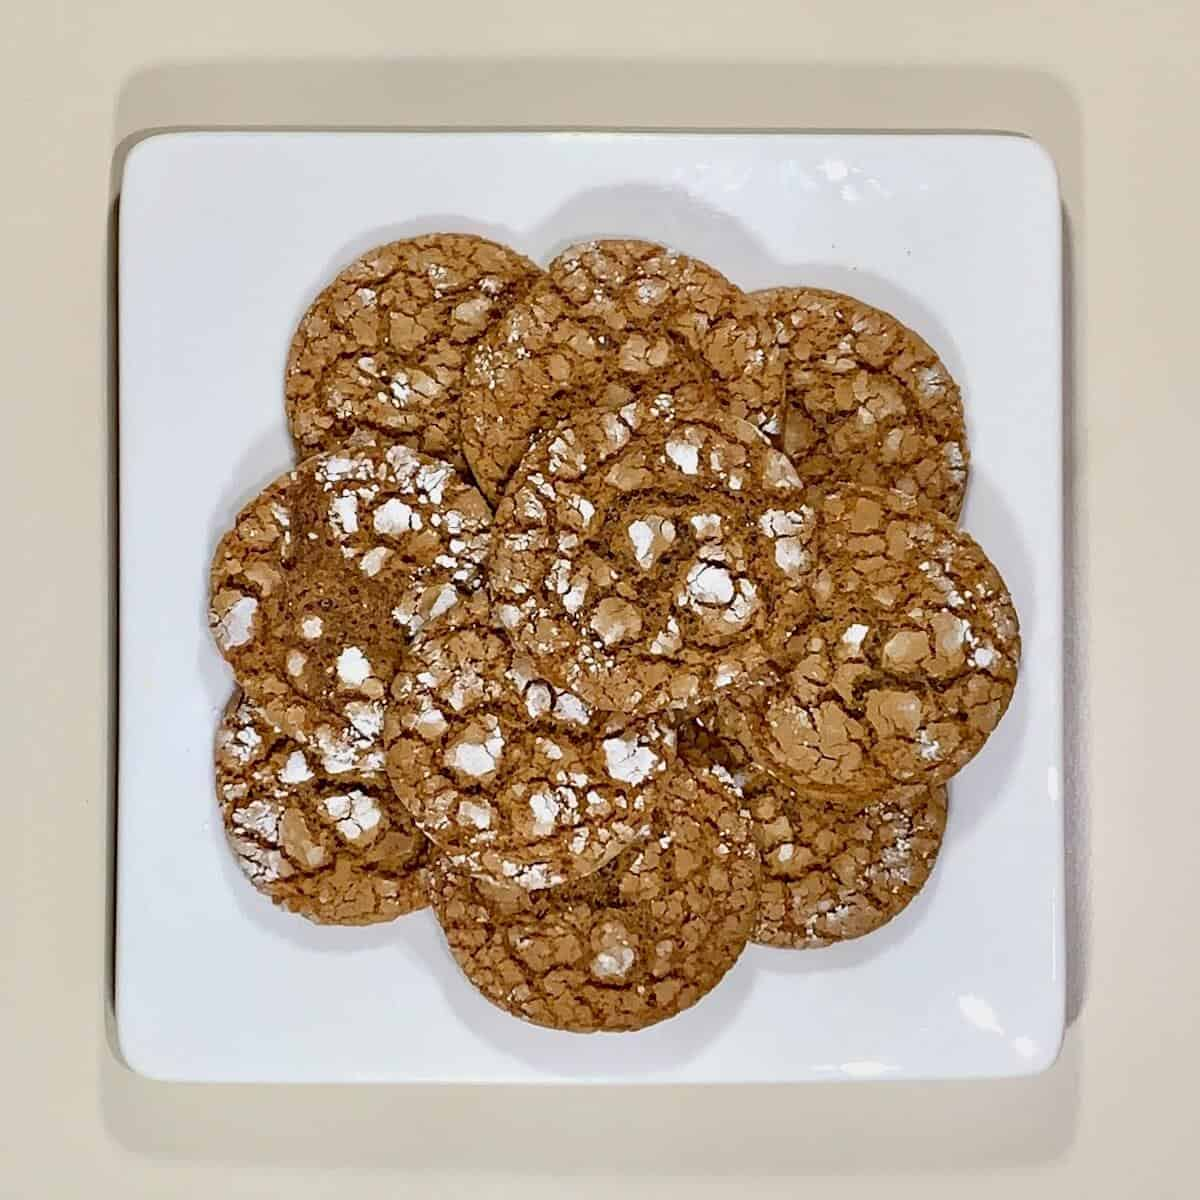 Molasses cookies stacked on white plate from overhead.